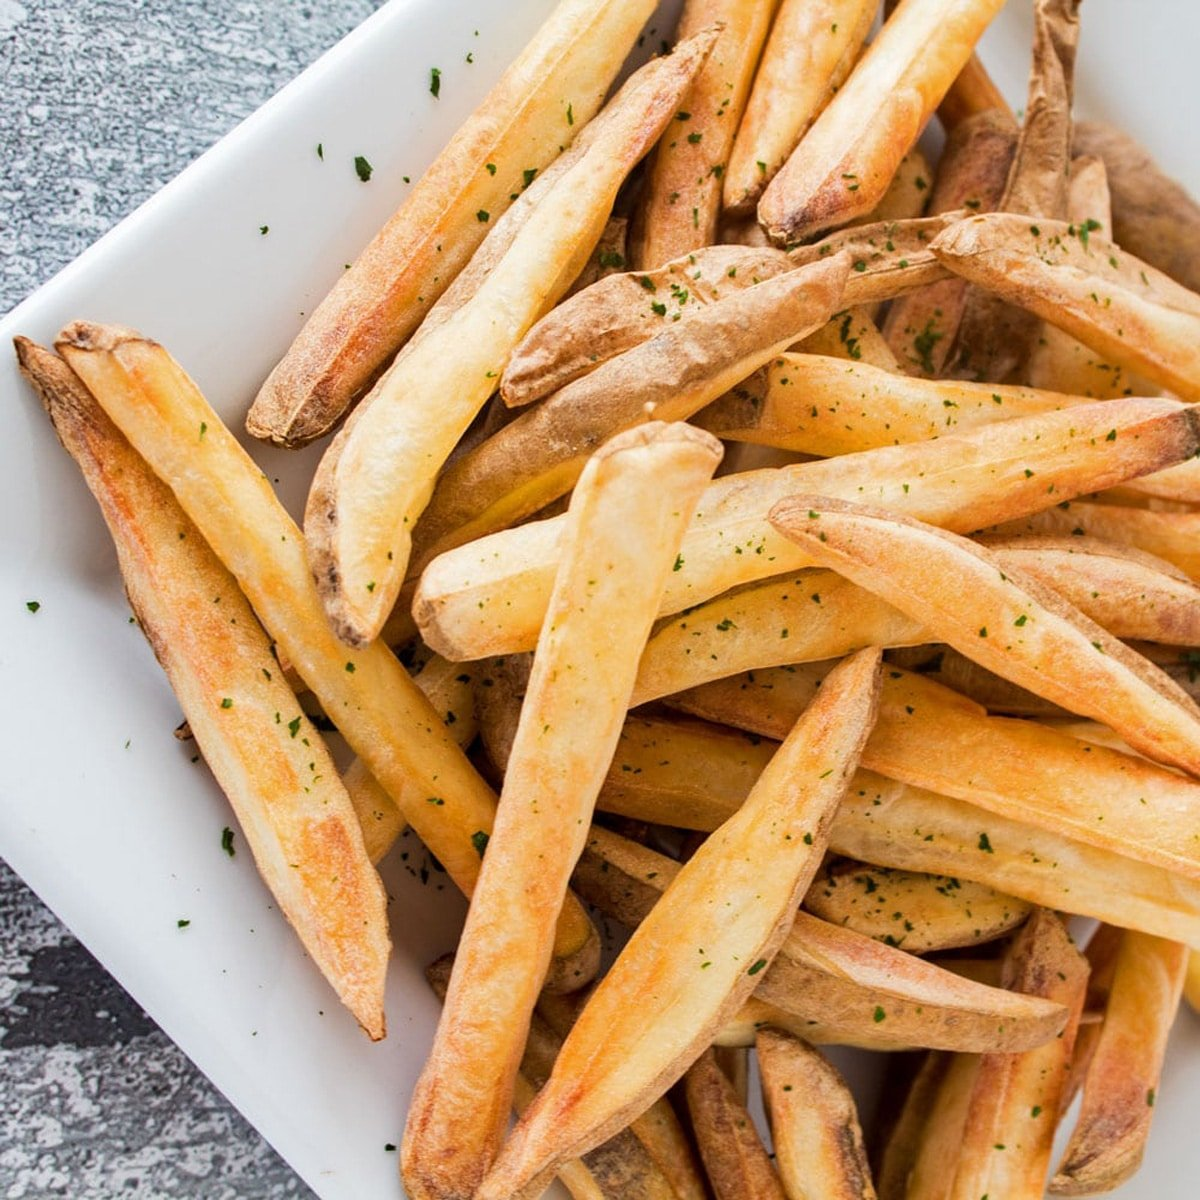 Air fried french fries on a white plate.